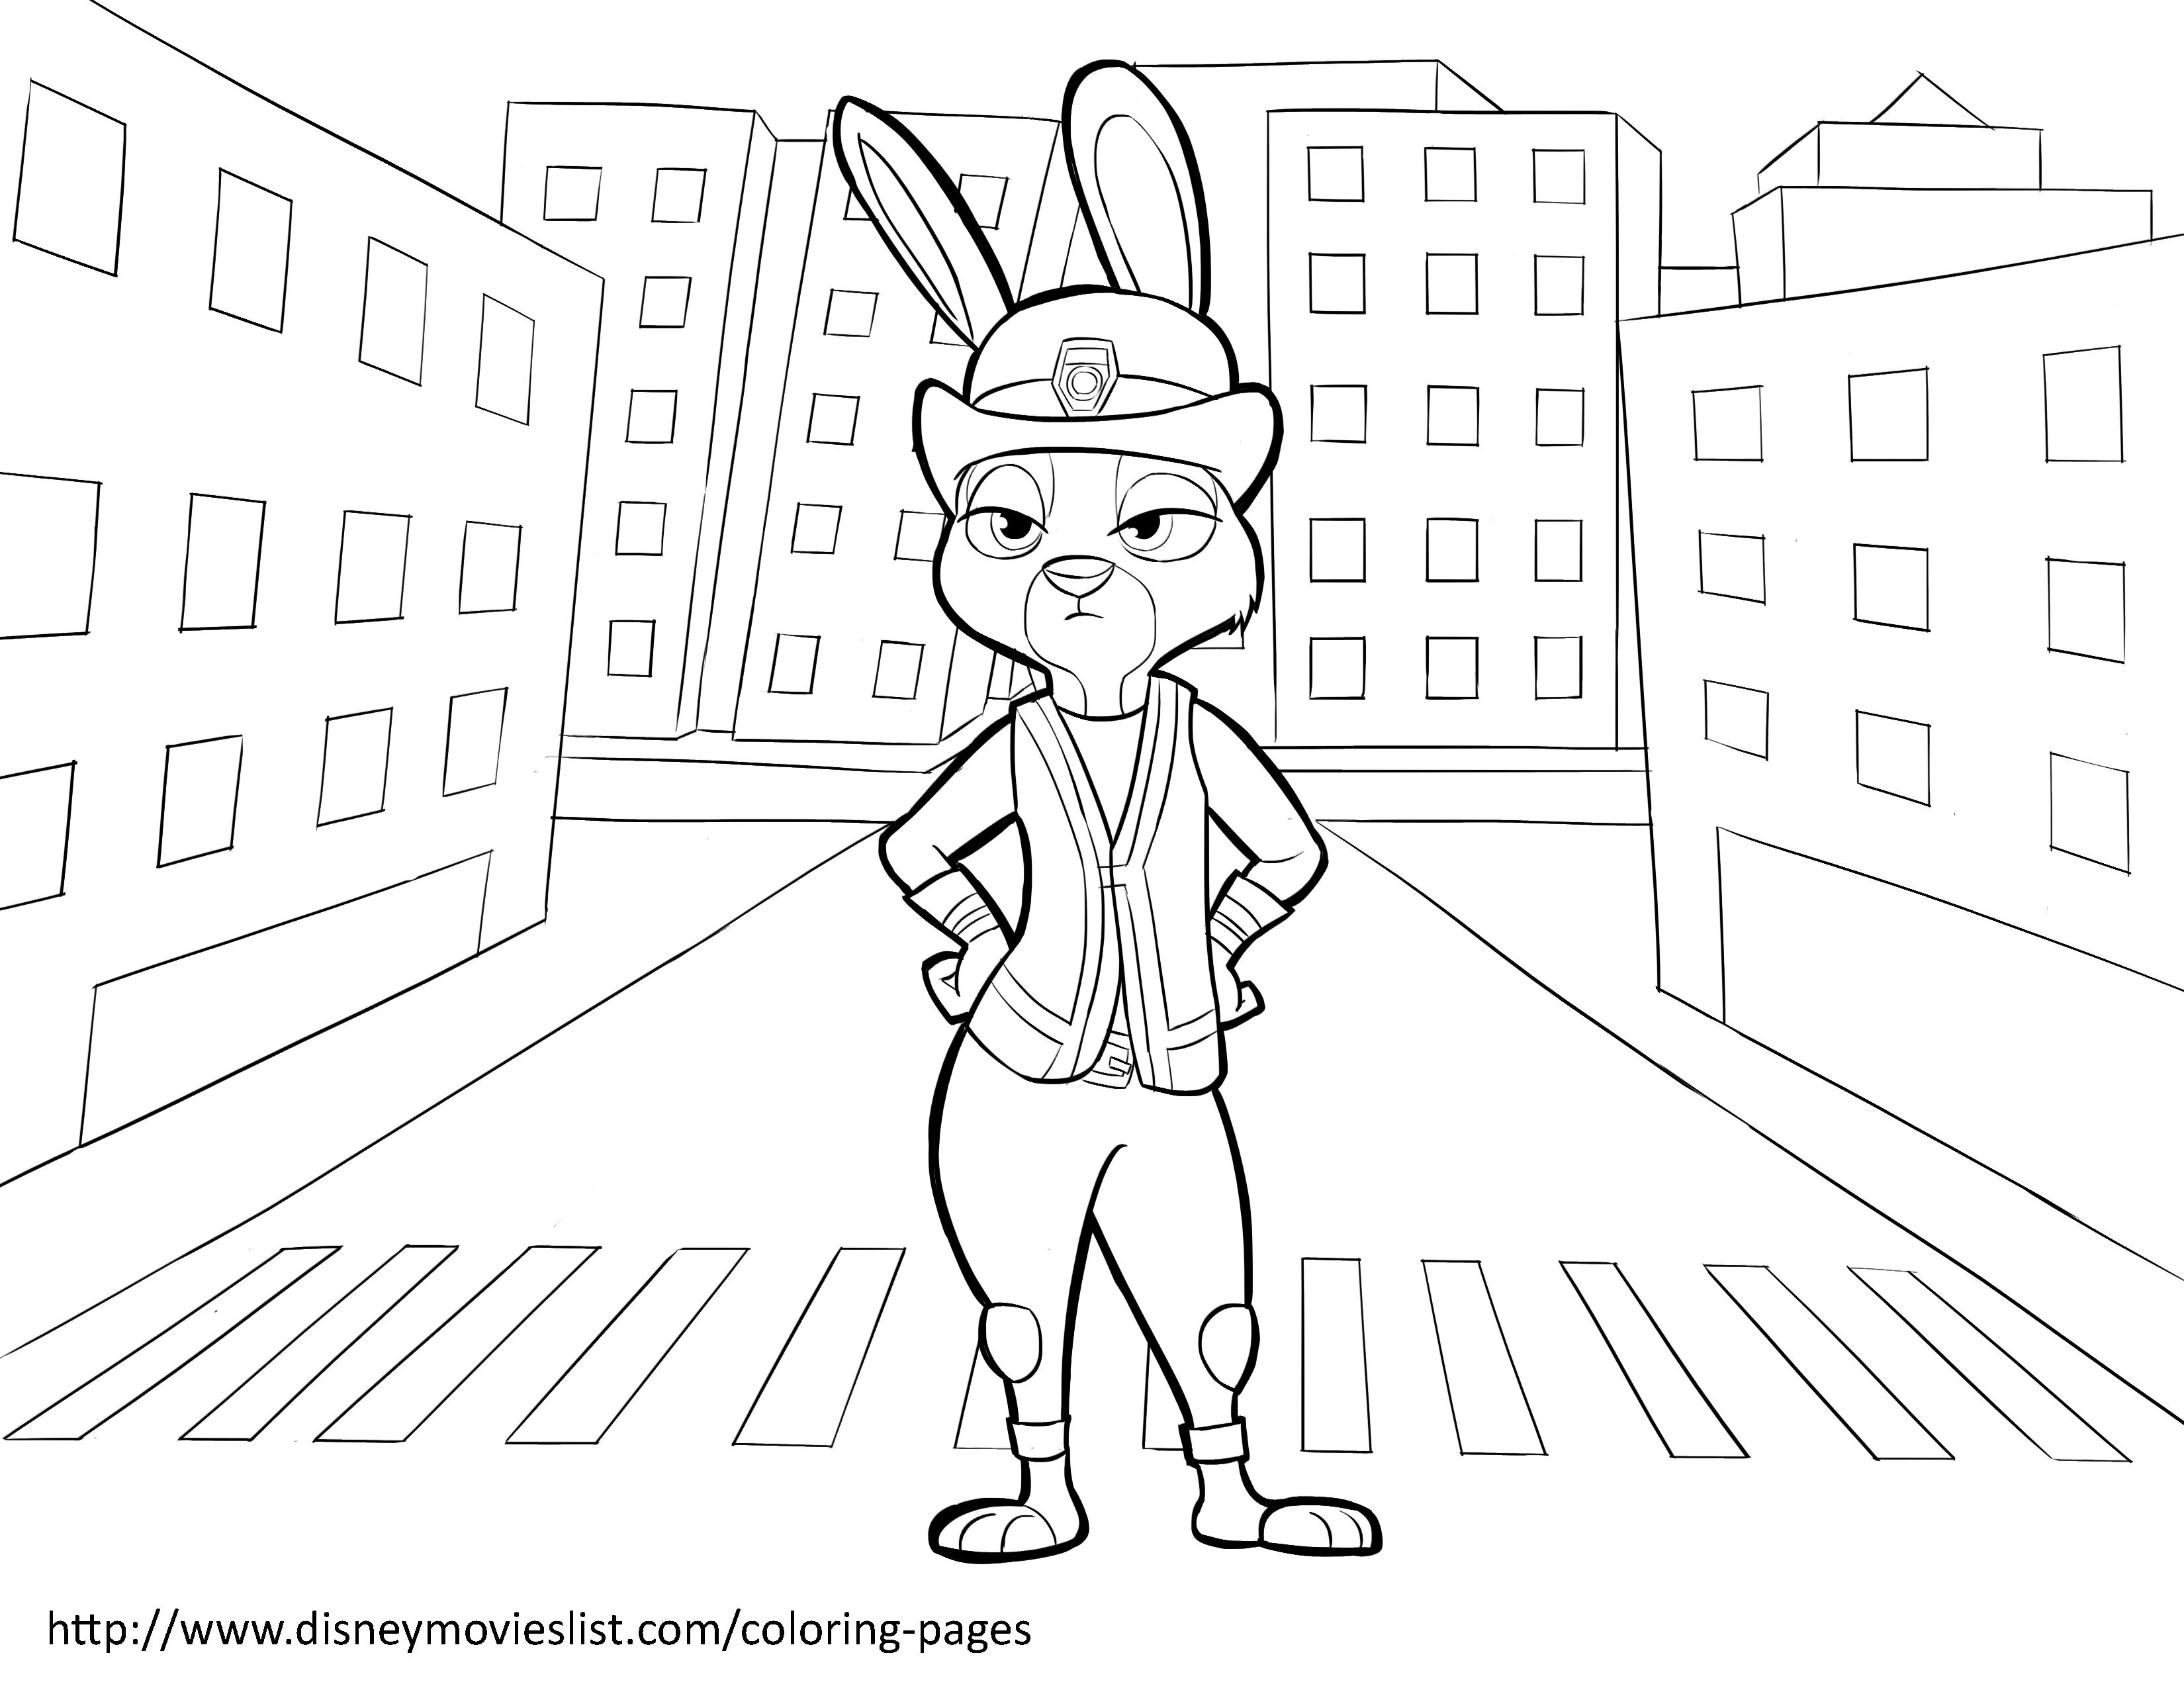 free zootopia coloring pages - photo#33